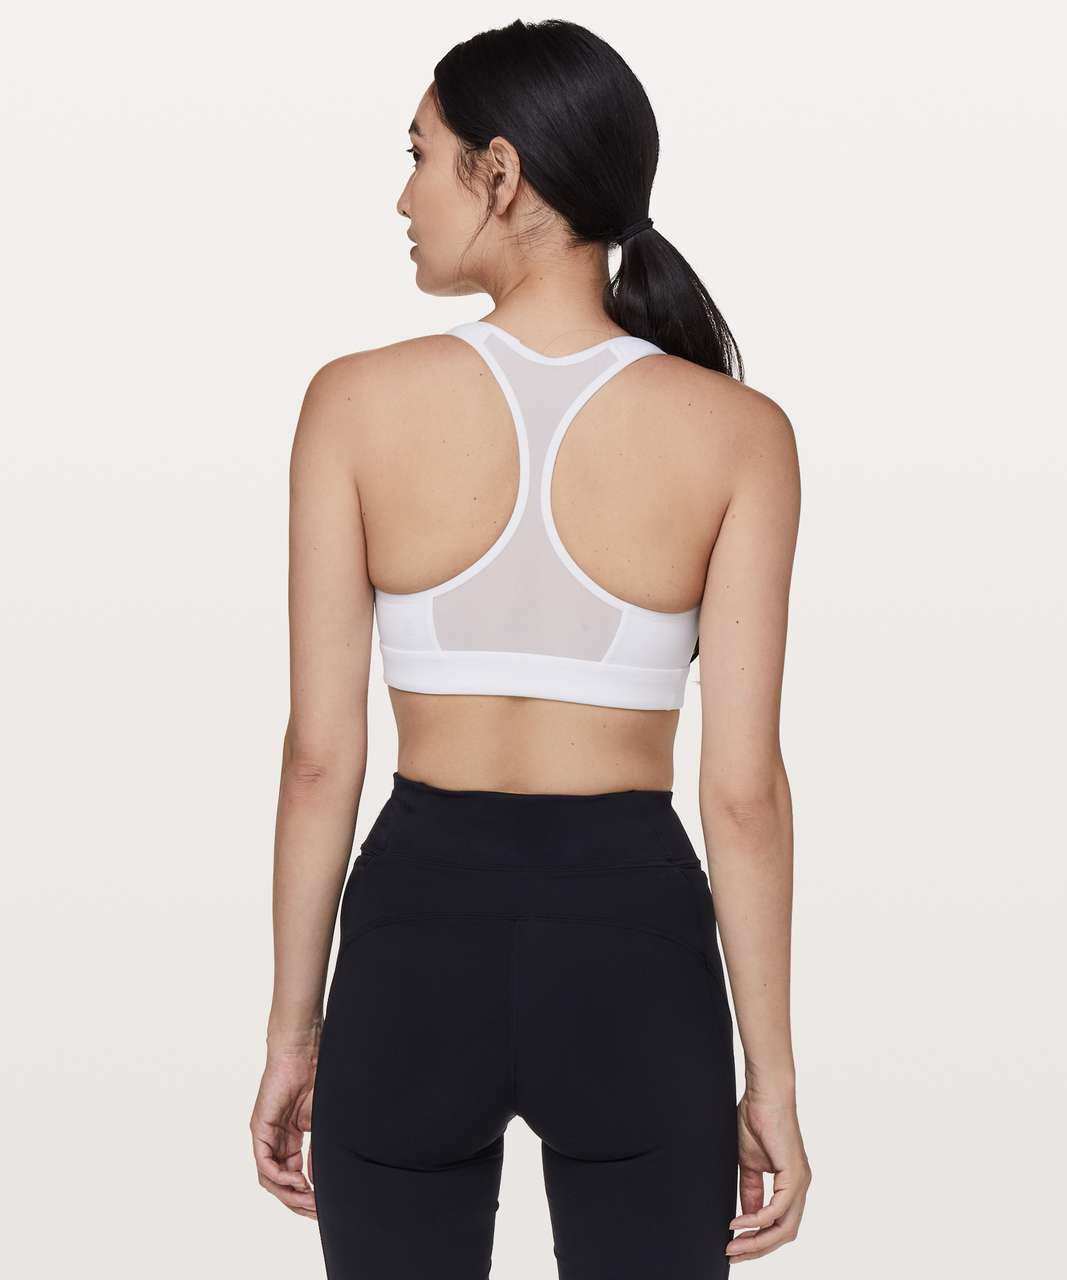 c9bab717e Lululemon Speed Up Bra  High Support for C D Cup - White - lulu fanatics